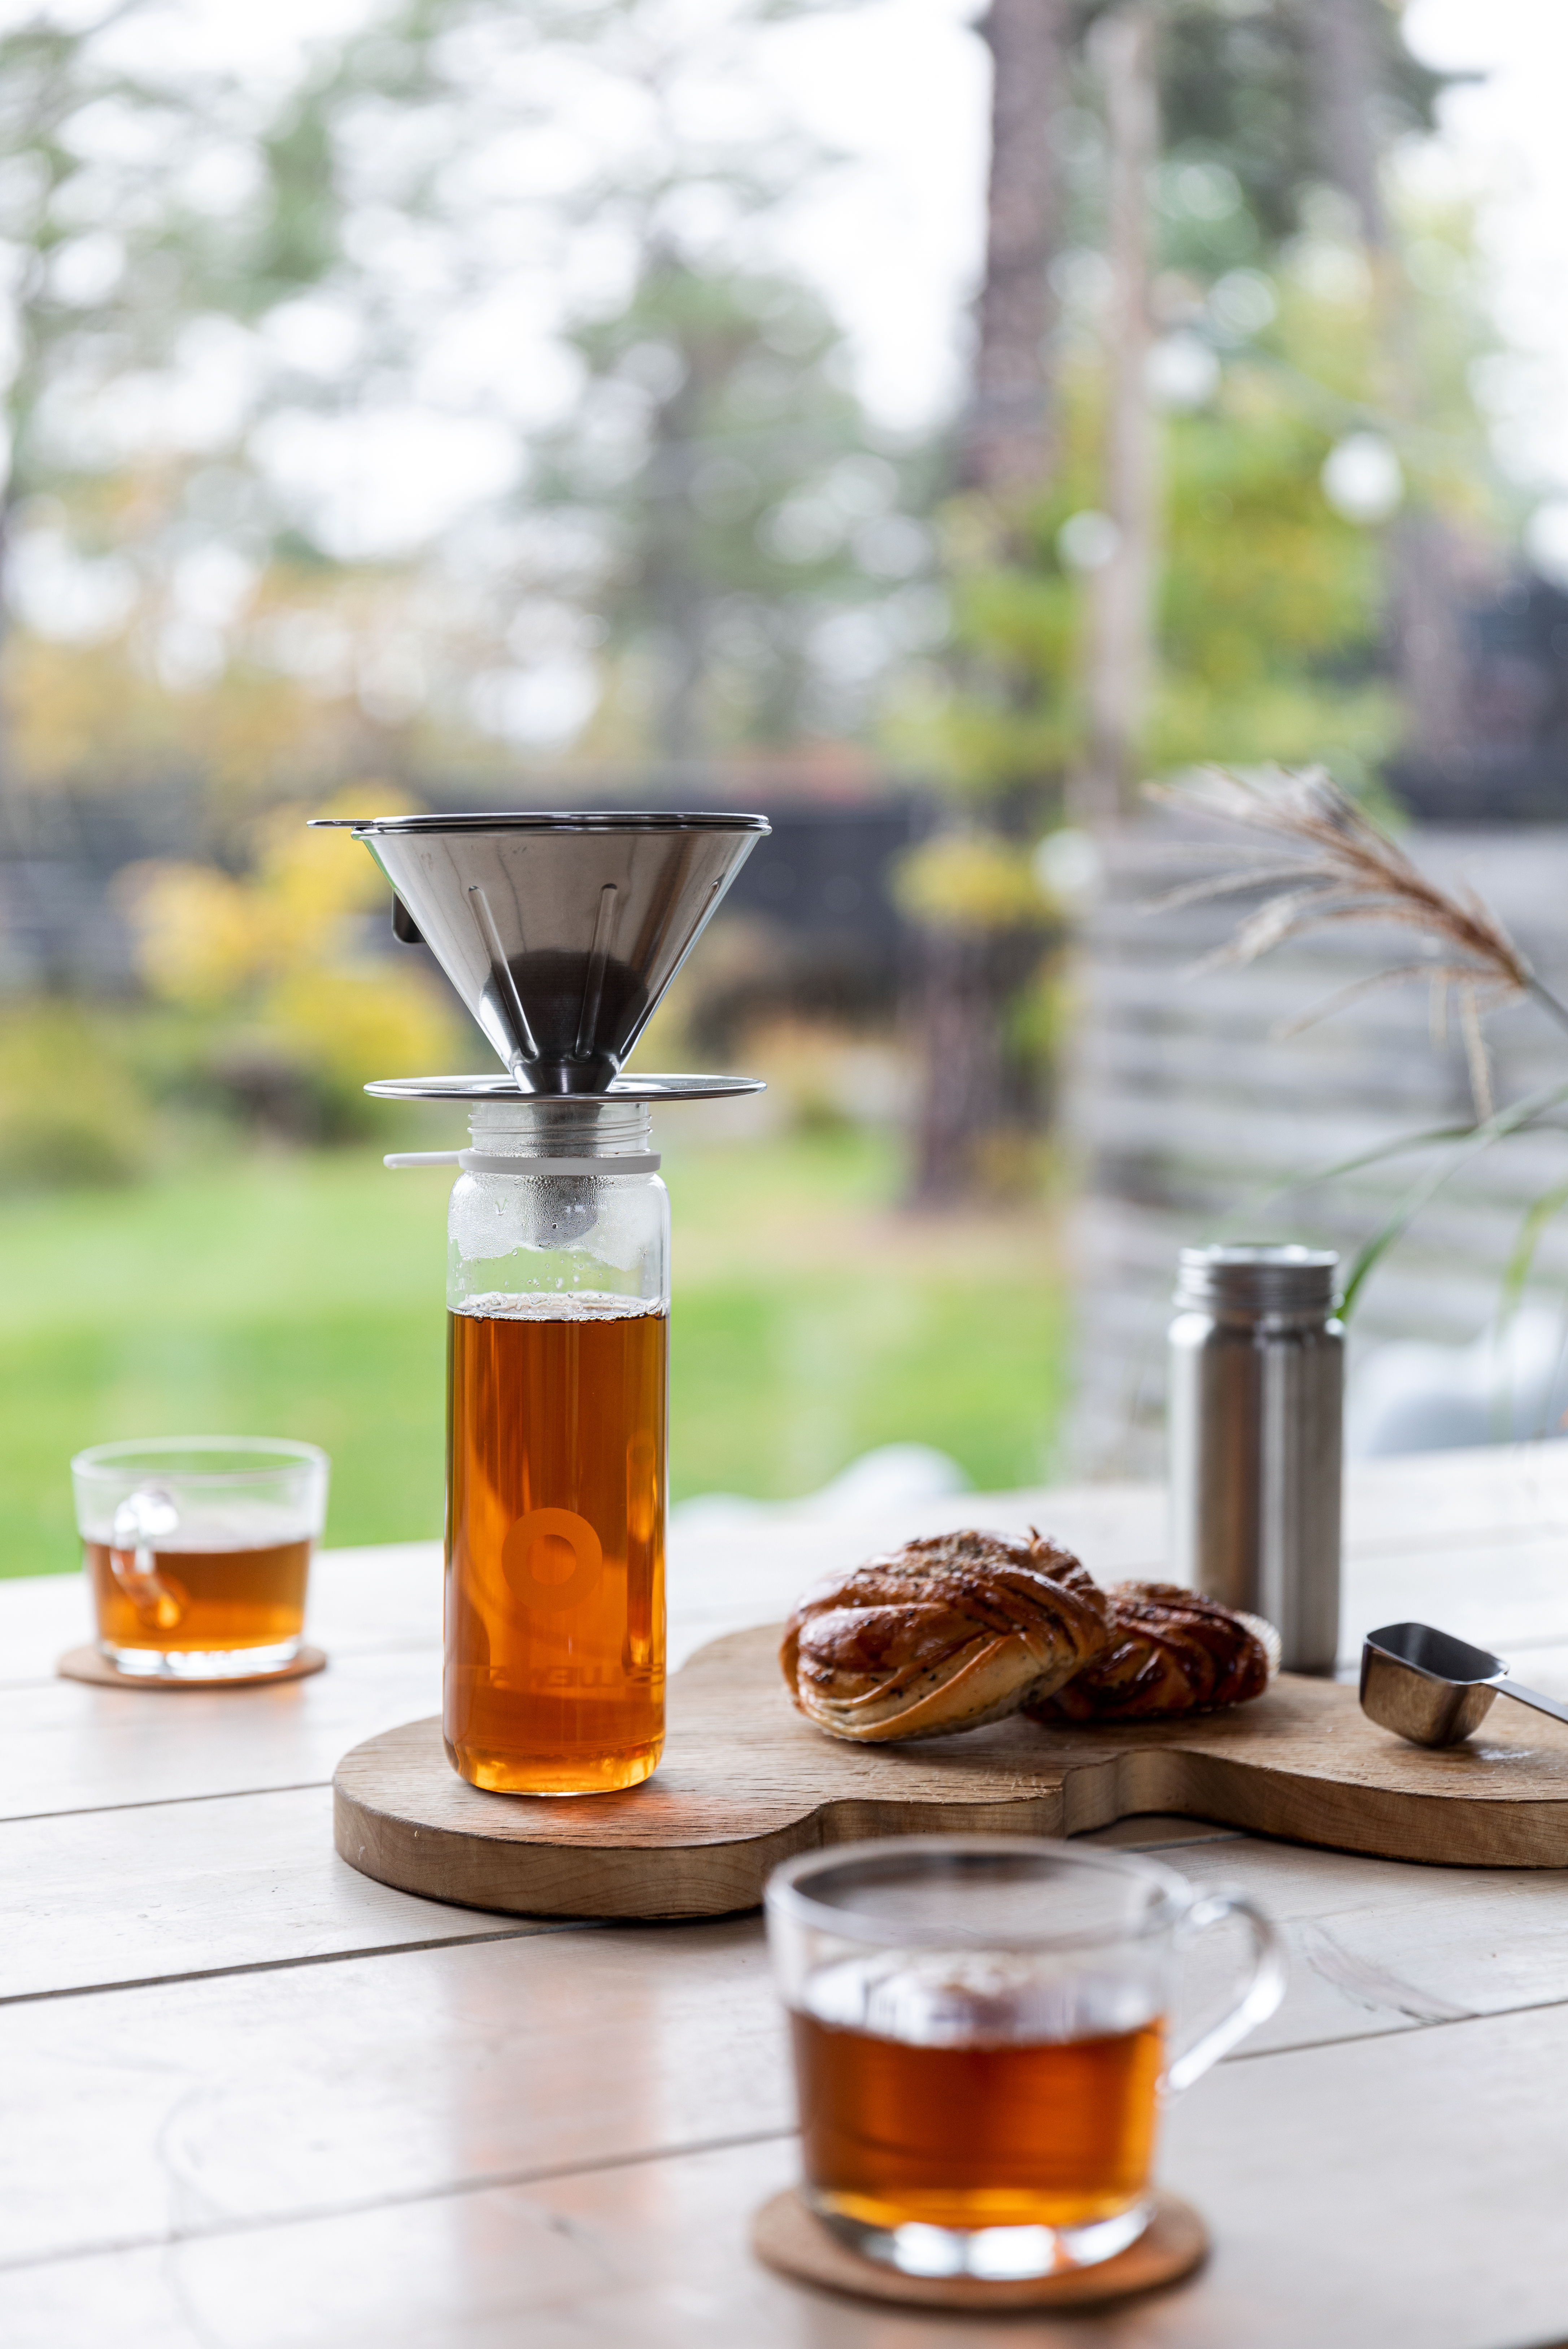 clear-glass-cup-with-yellow-liquid-on-brown-wooden-chopping-board